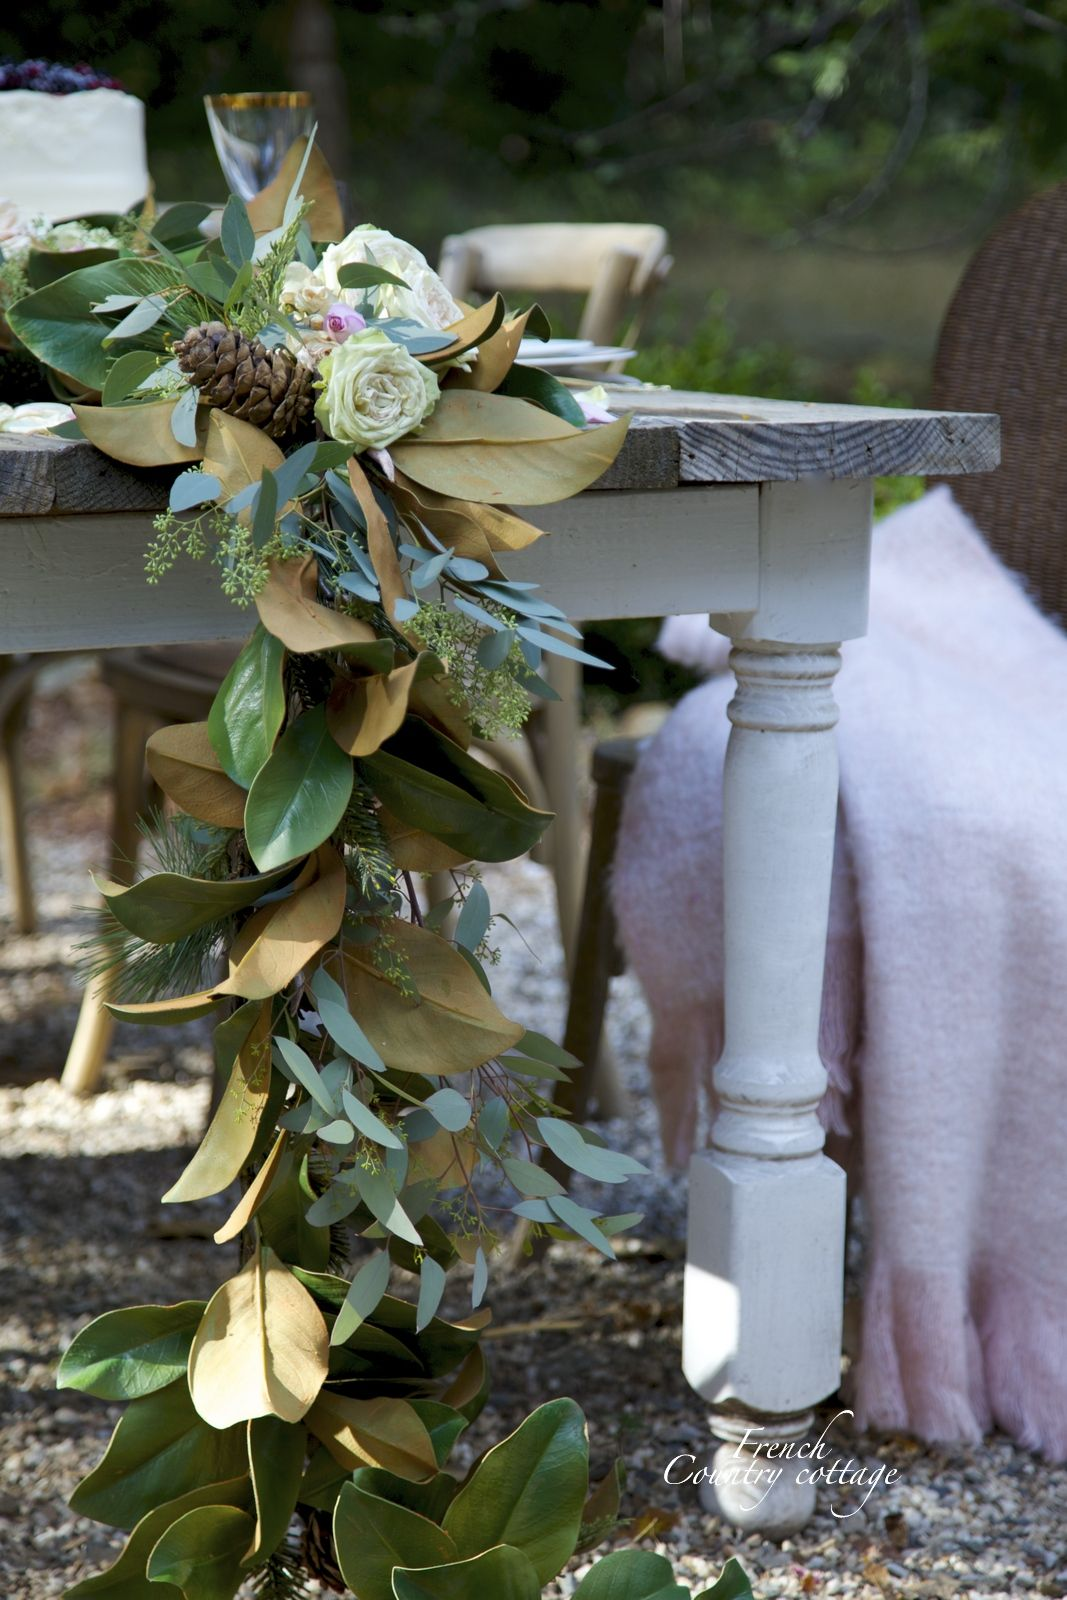 Magnolia Garland Centerpiece With A Secret French Country Cottage Magnolia Garland Magnolia Leaves Centerpiece Magnolia Leaf Garland